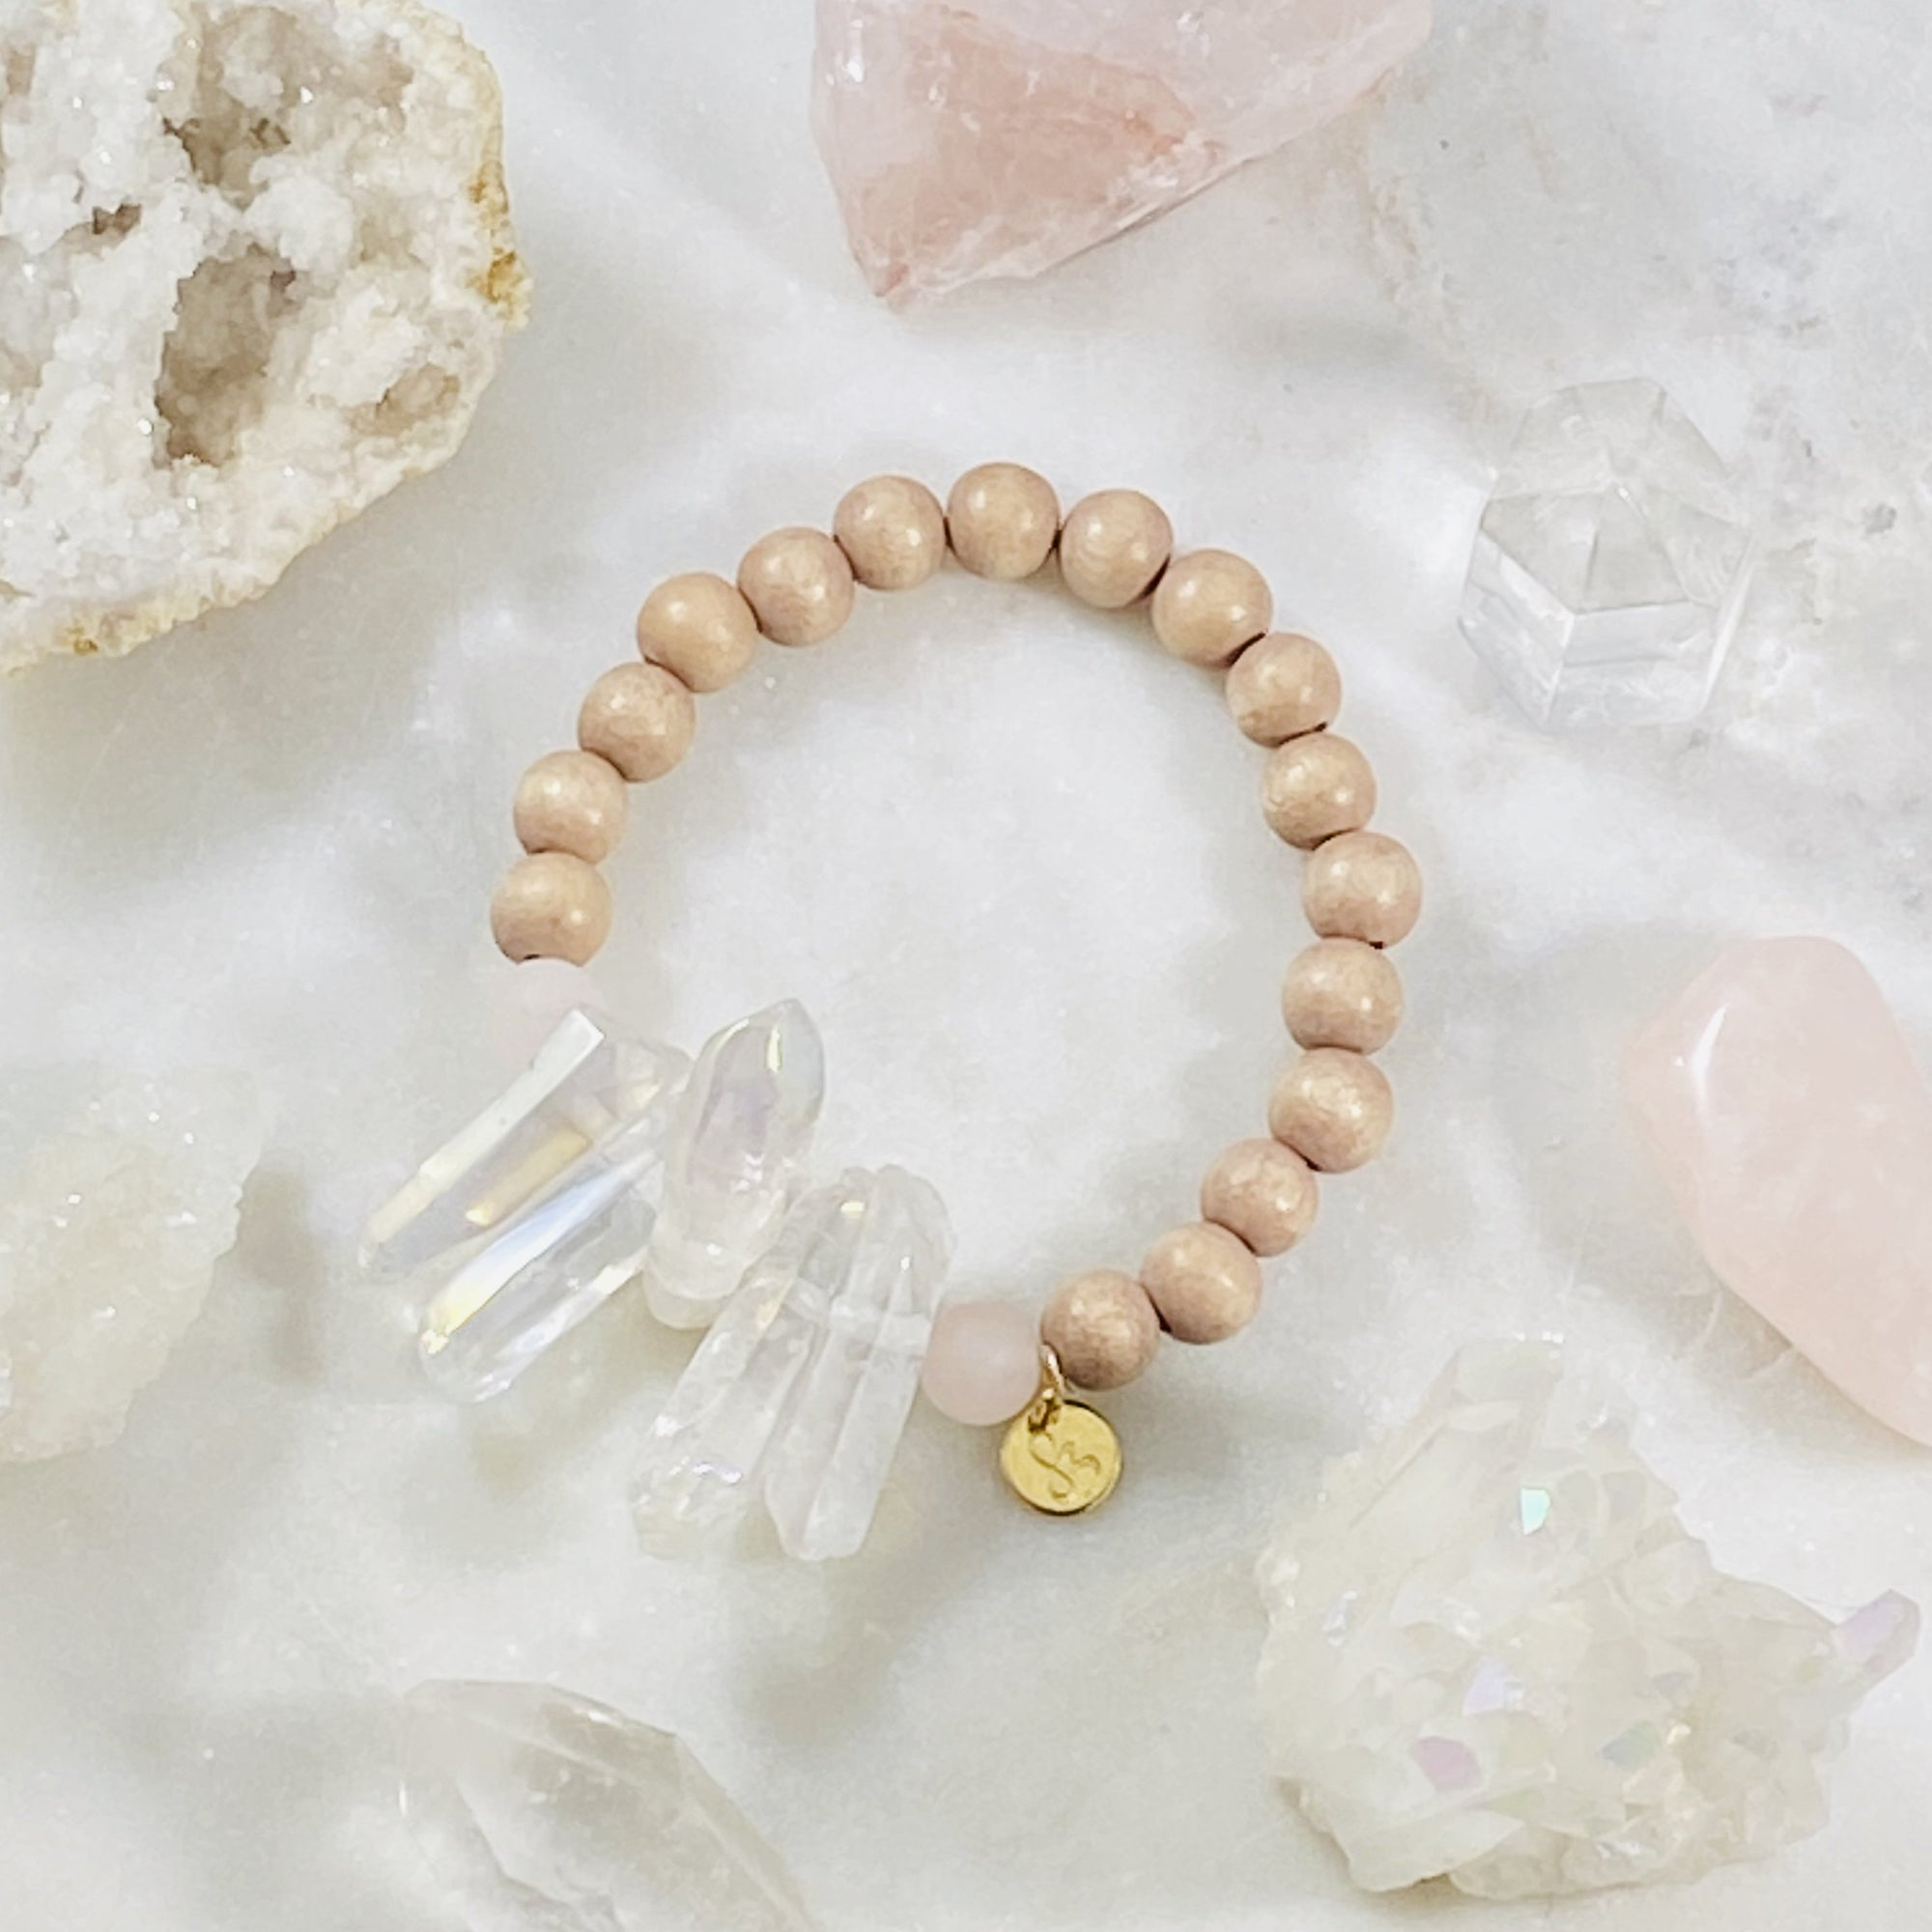 Sarah Belle healing crystal jewelry